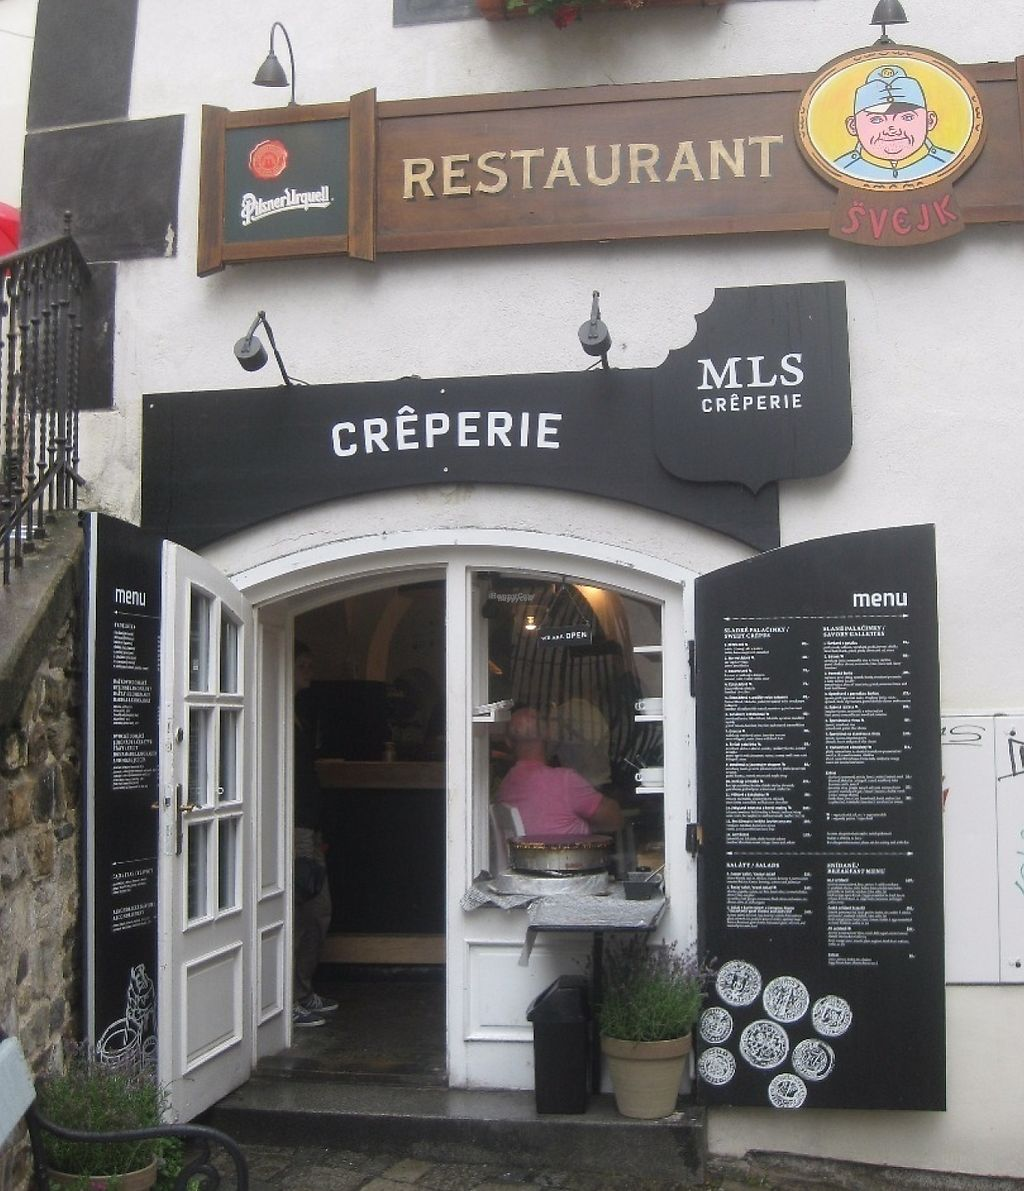 """Photo of REMOVED: MLS Creperie  by <a href=""""/members/profile/jennyc32"""">jennyc32</a> <br/>MLS Creperie <br/> August 6, 2016  - <a href='/contact/abuse/image/63590/236230'>Report</a>"""